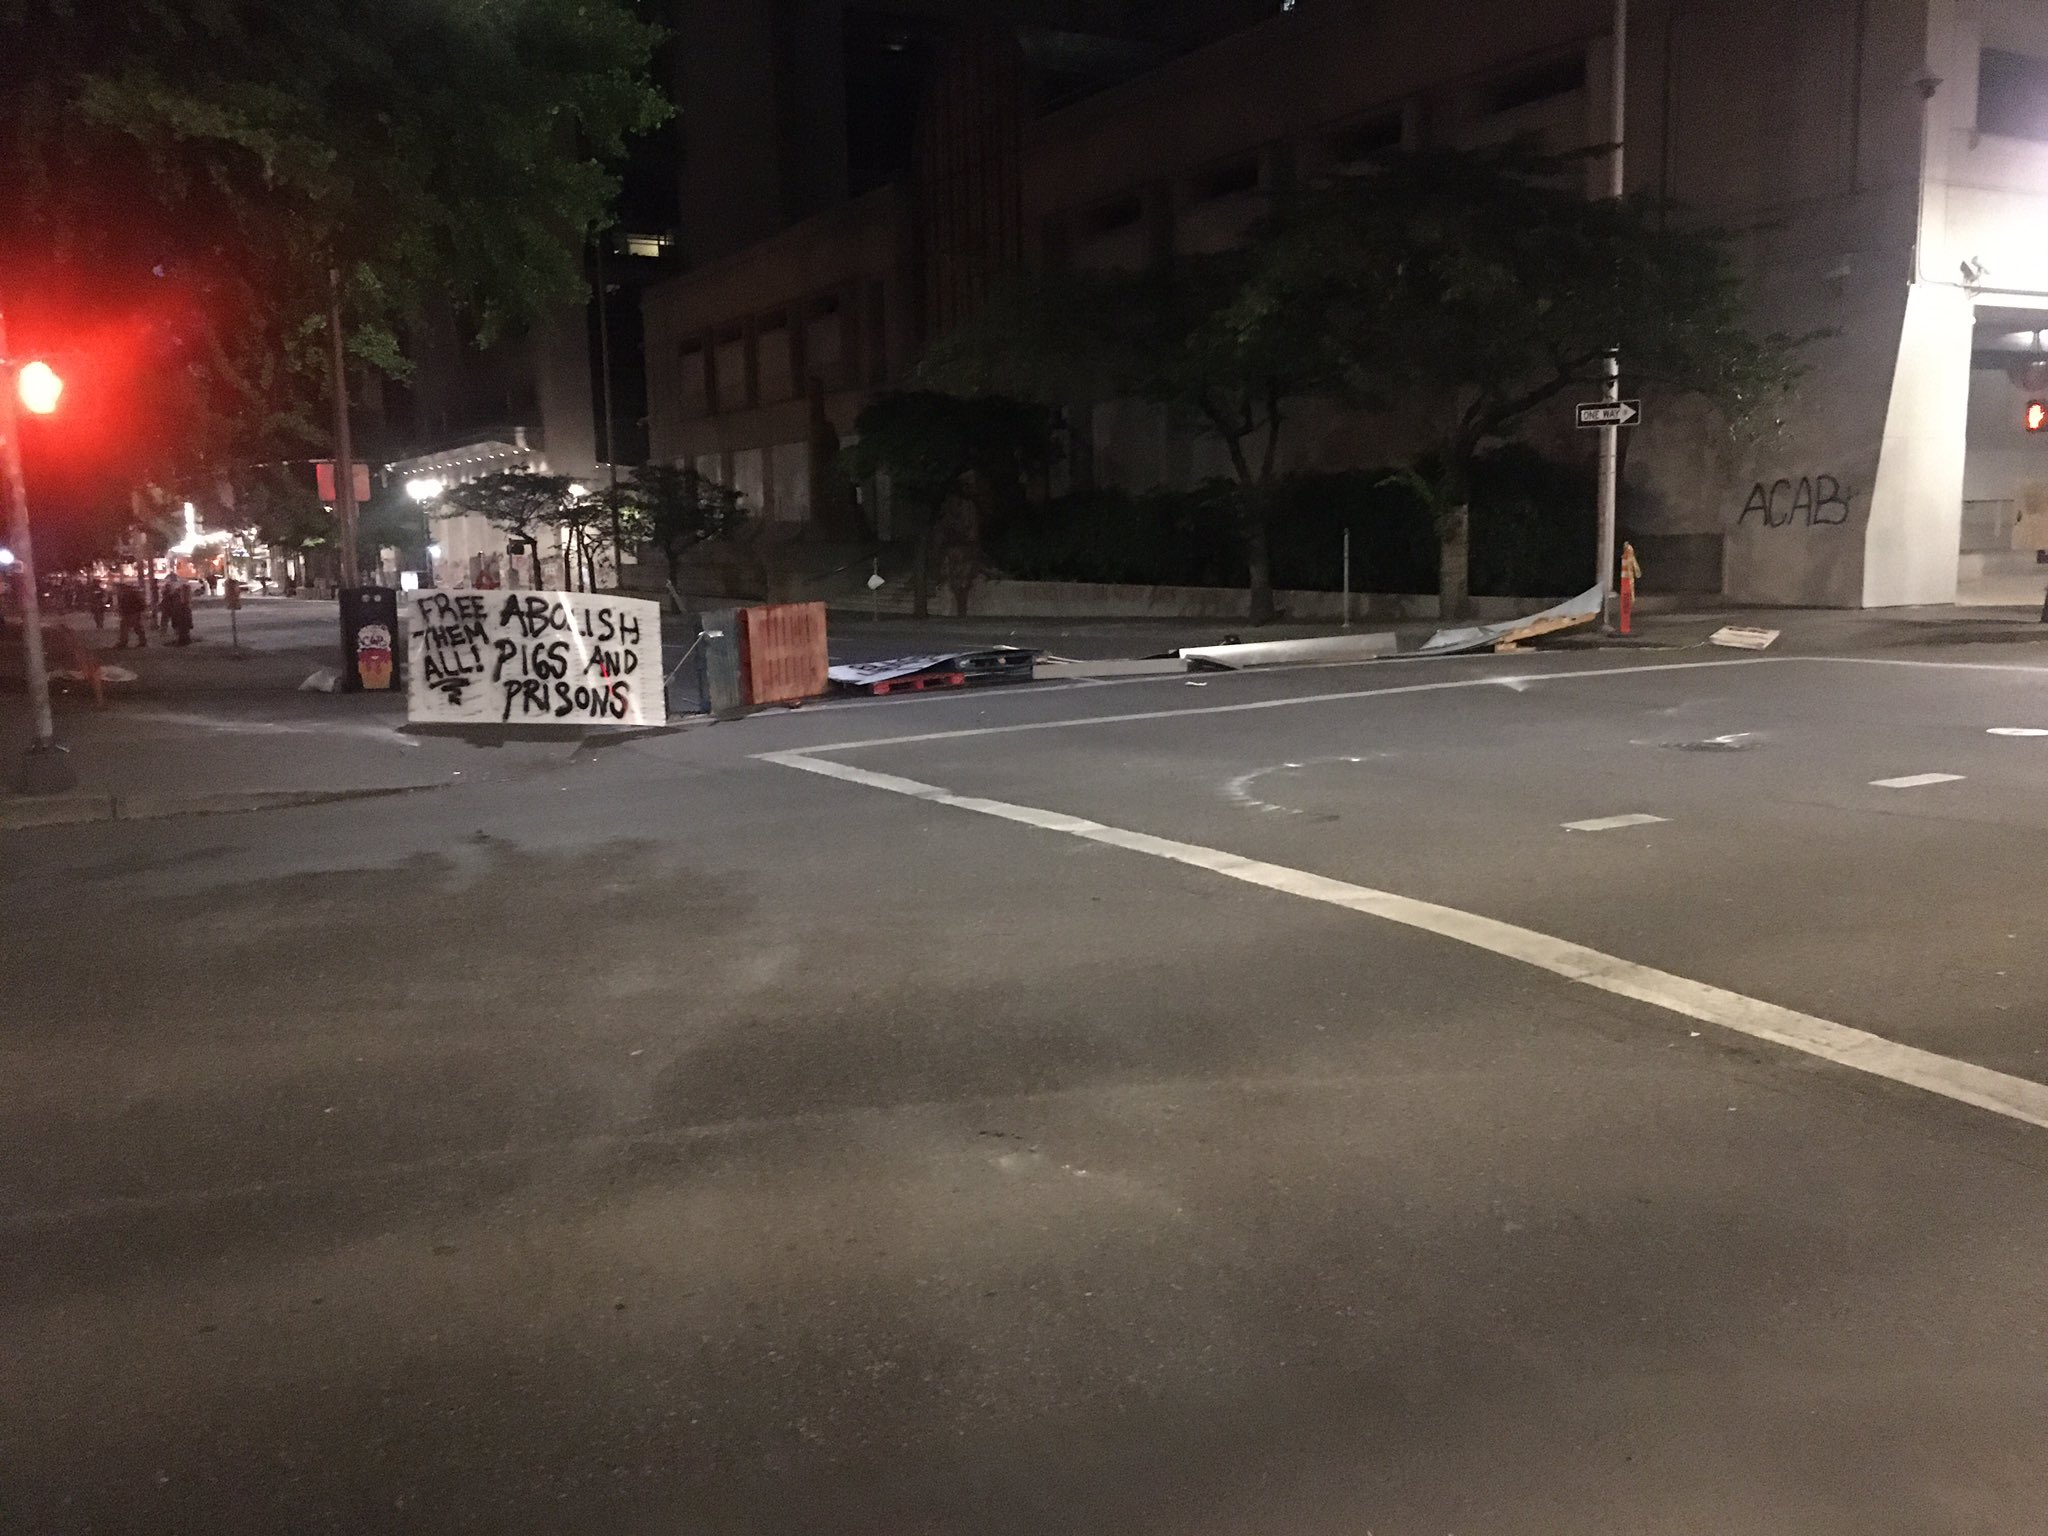 Demonstrators formed what they call the Chinook Land Autonomous Territory in downtown Portland Parks near the Justice Center on July 14, 2020. By the next morning, most people had left the area. KATU photo